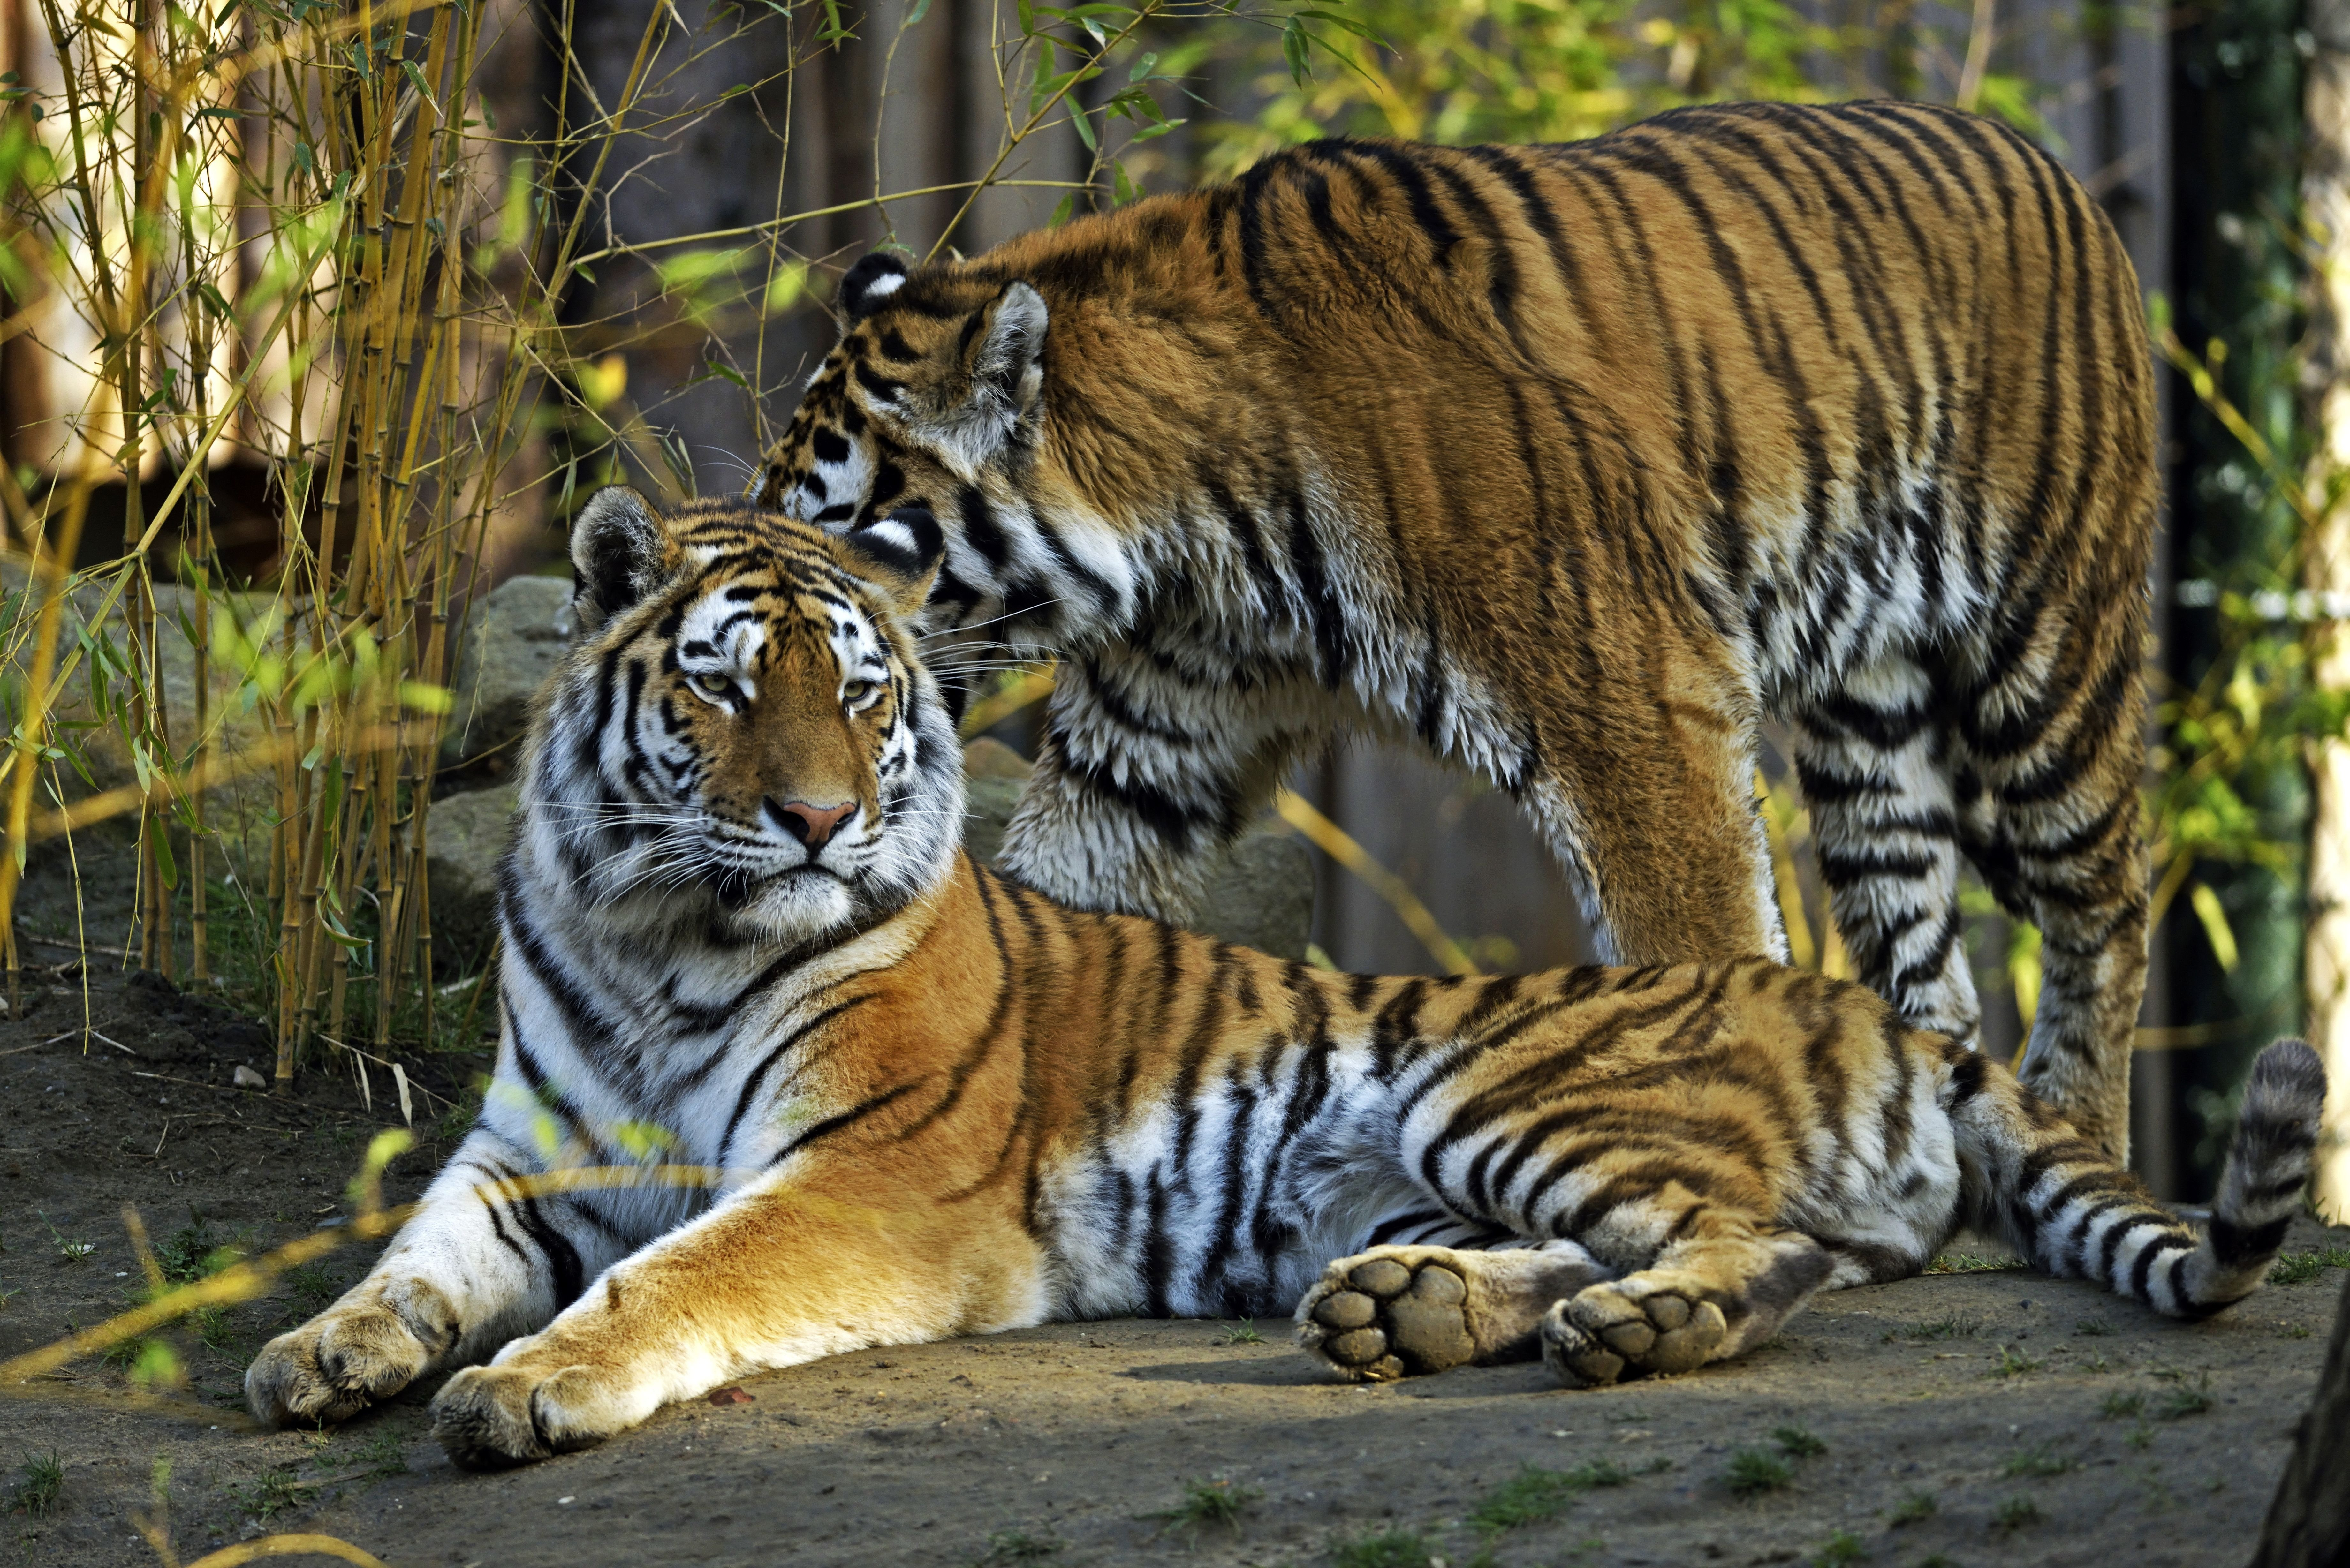 Large Hd Wallpapers For Laptop Big Cats Tigers Two Animals Tiger Wallpaper 7360x4912